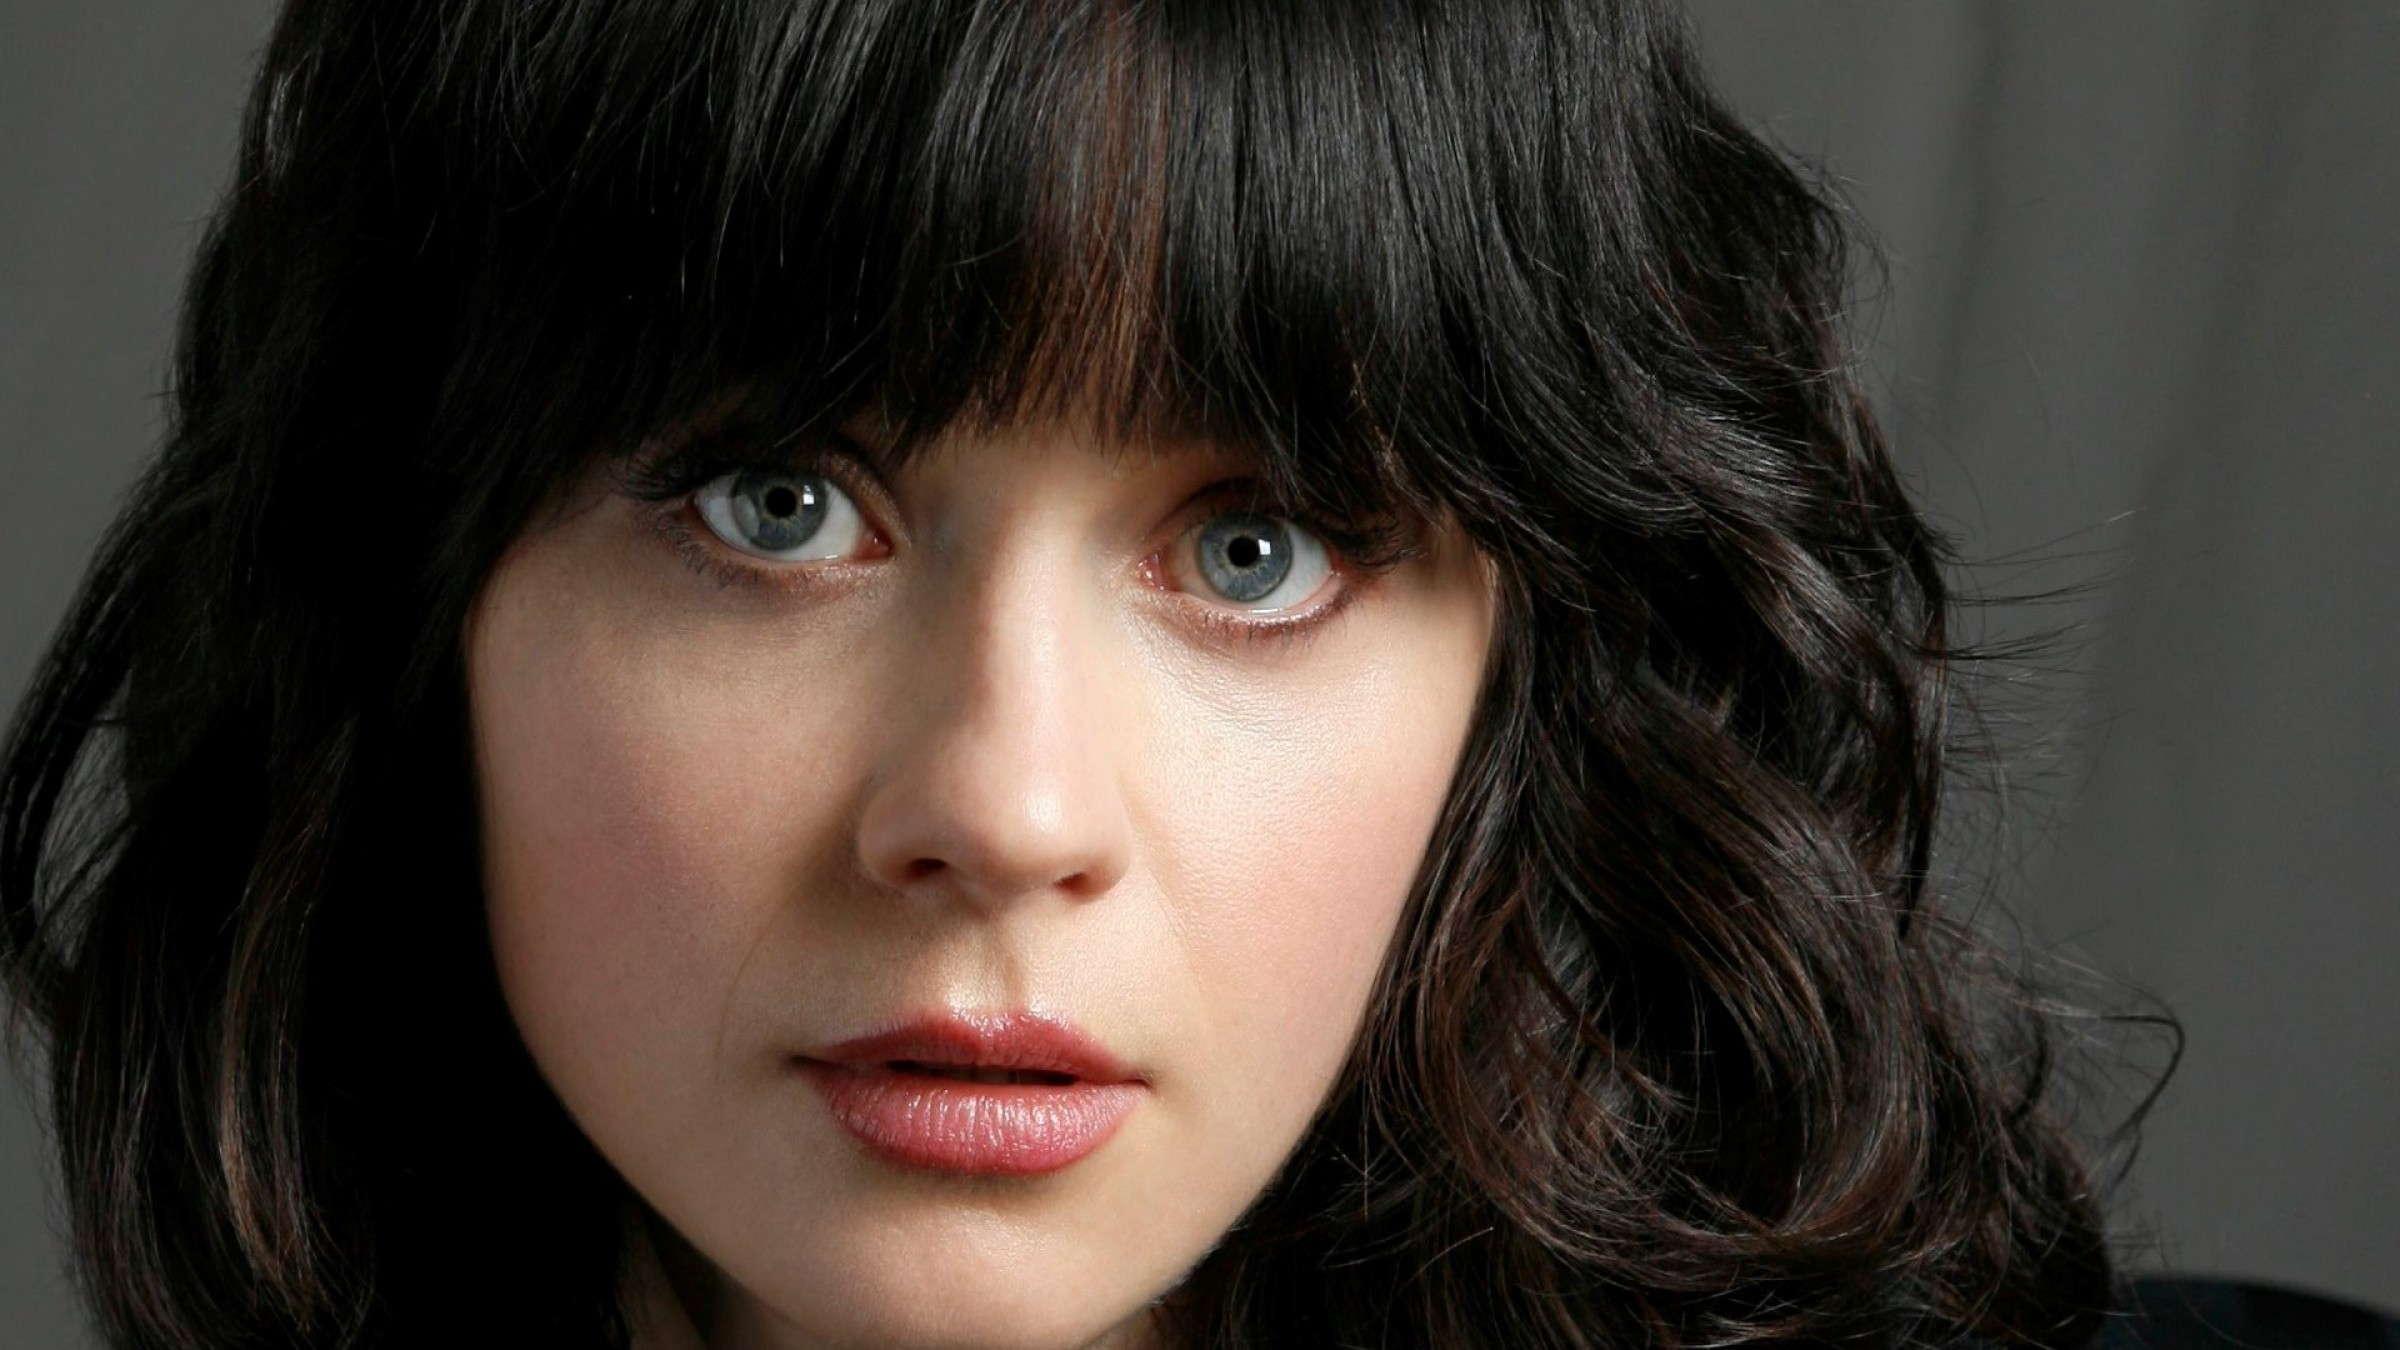 Zooey Deschanel for mobile